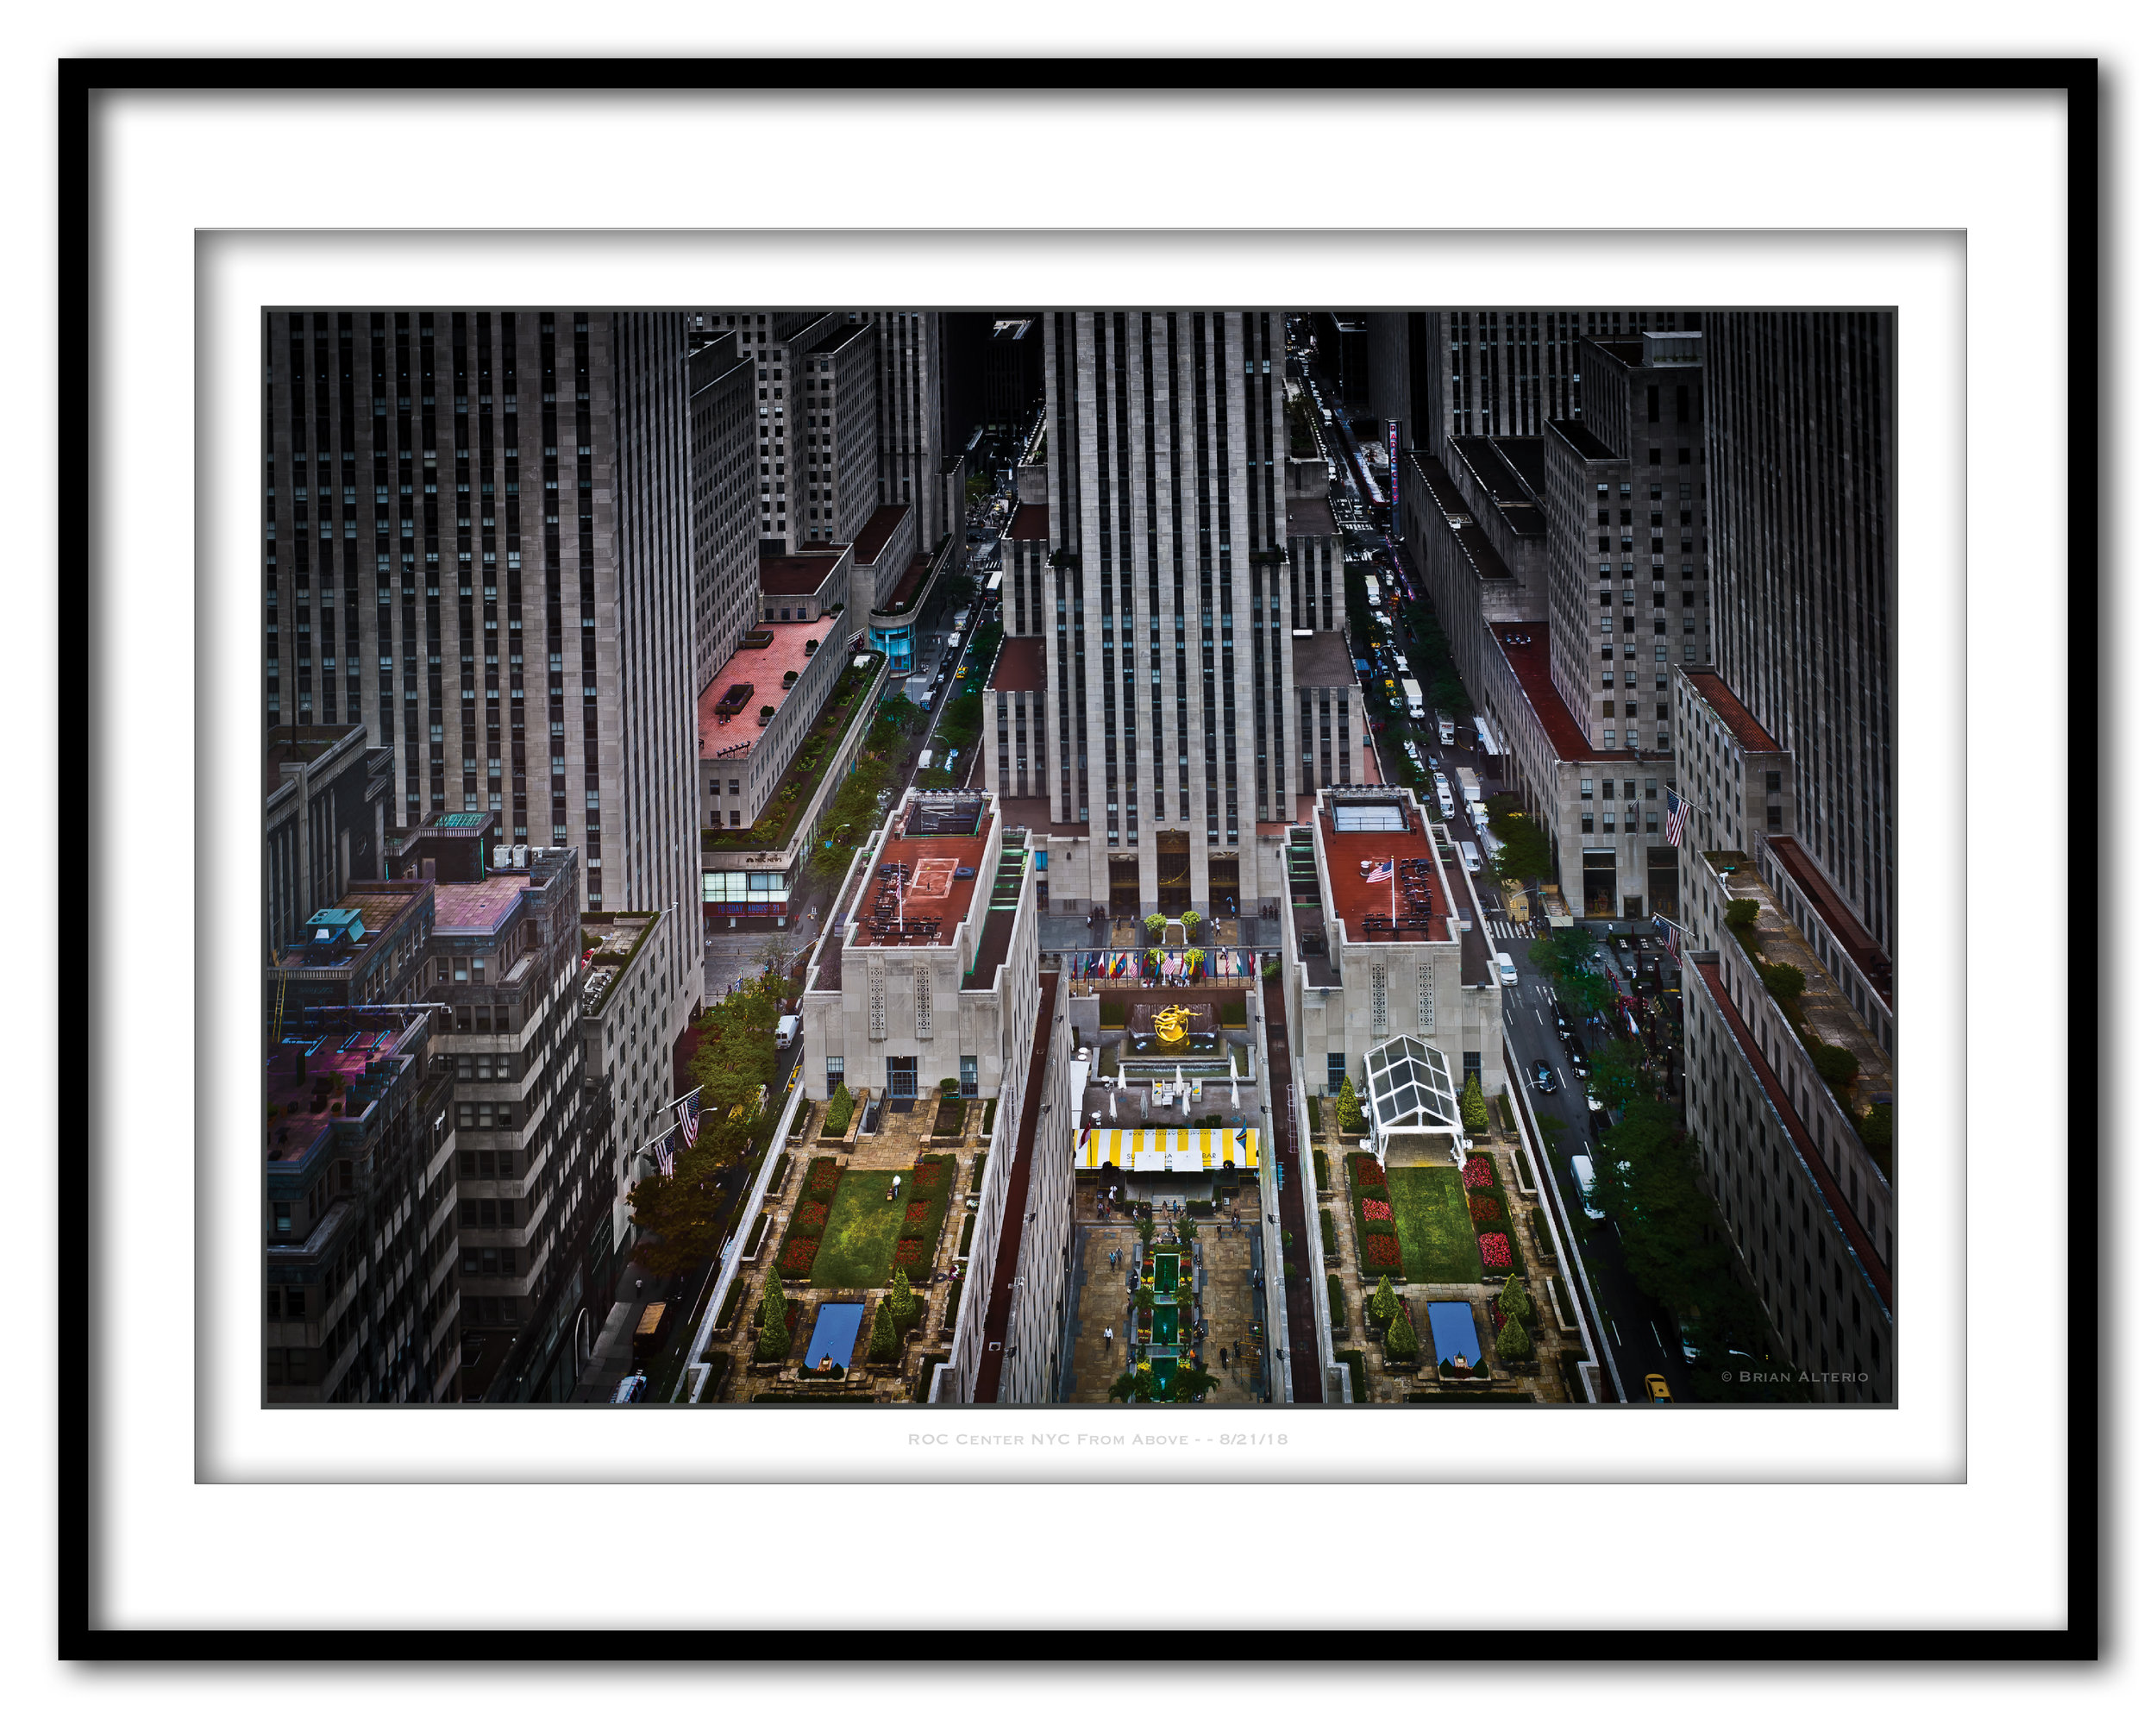 ROC Center NYC From Above - - 8-21-18 -Framed.jpg